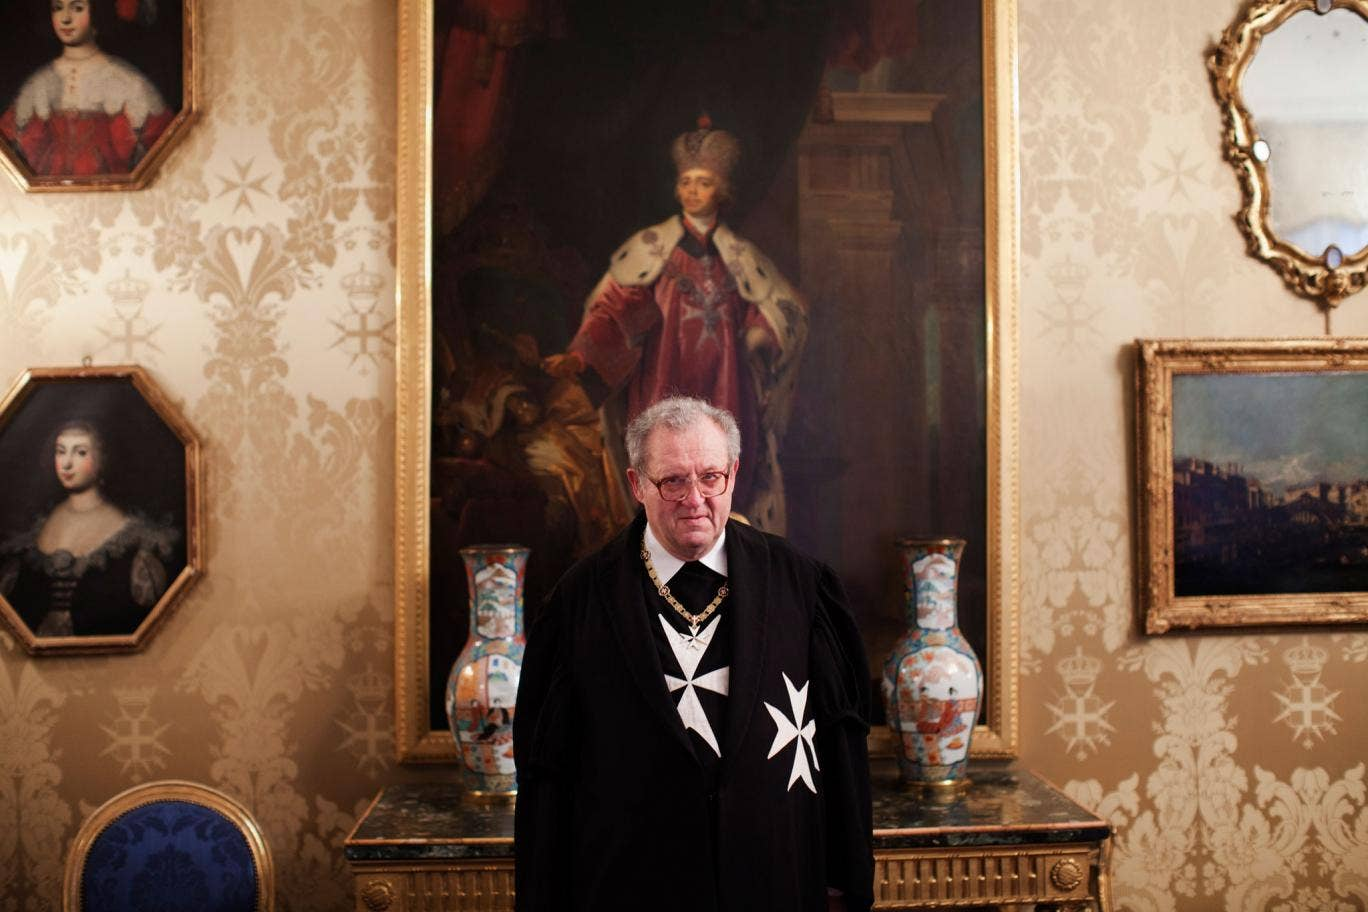 Grand Master Festing wearing the ceremonial black robes of the order